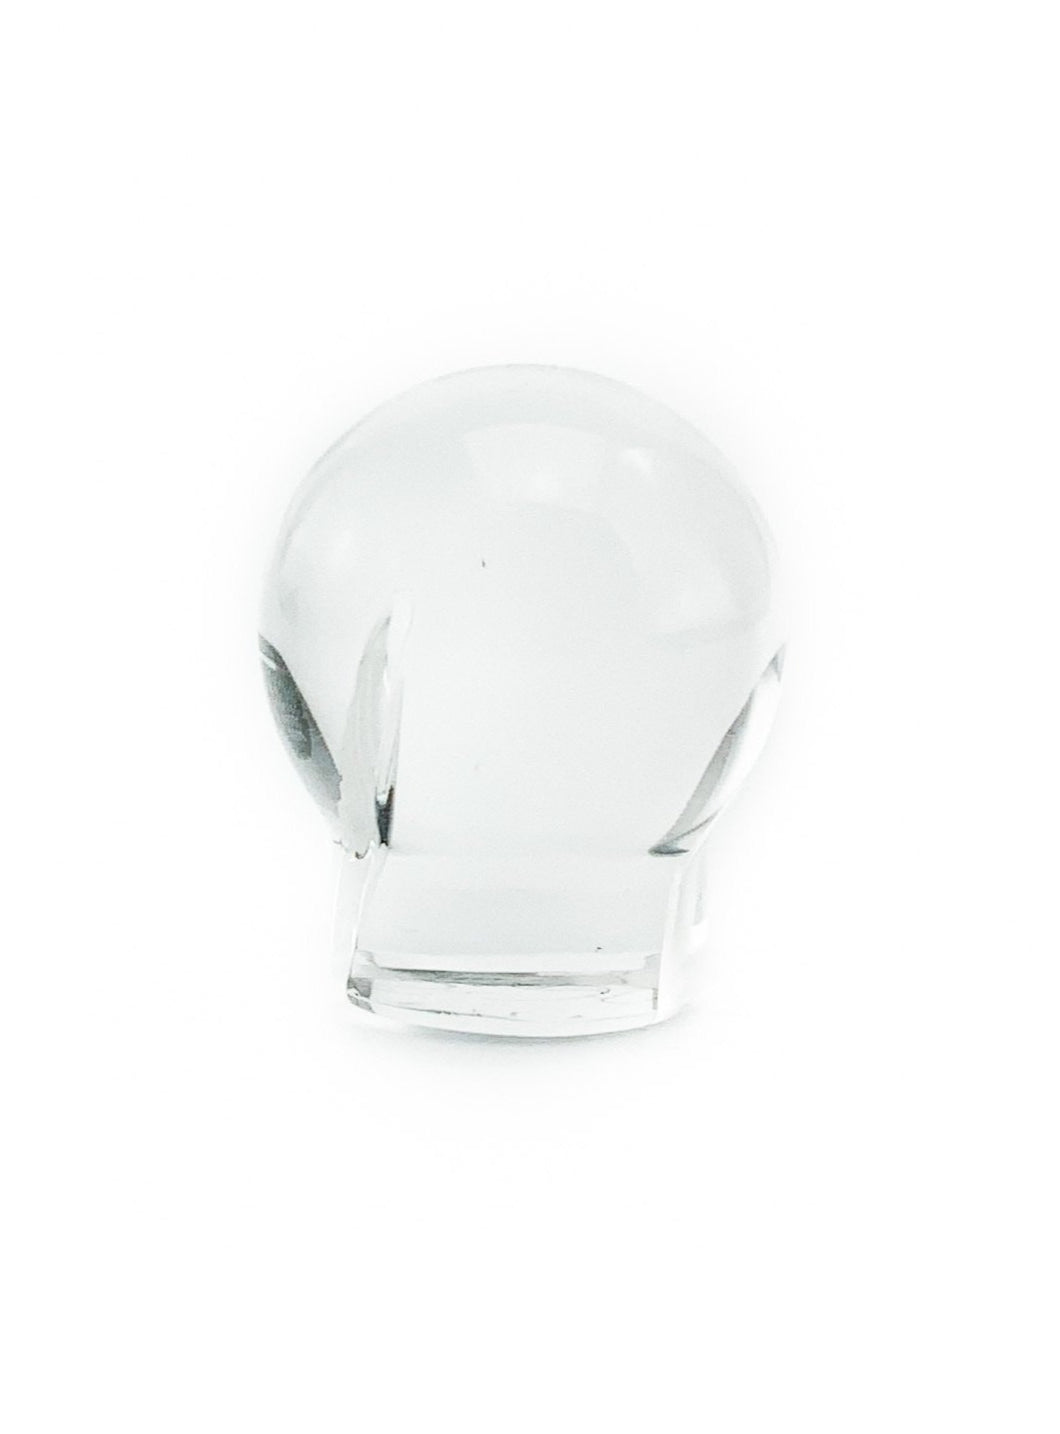 OTP Glass - Spinner Cap Clear